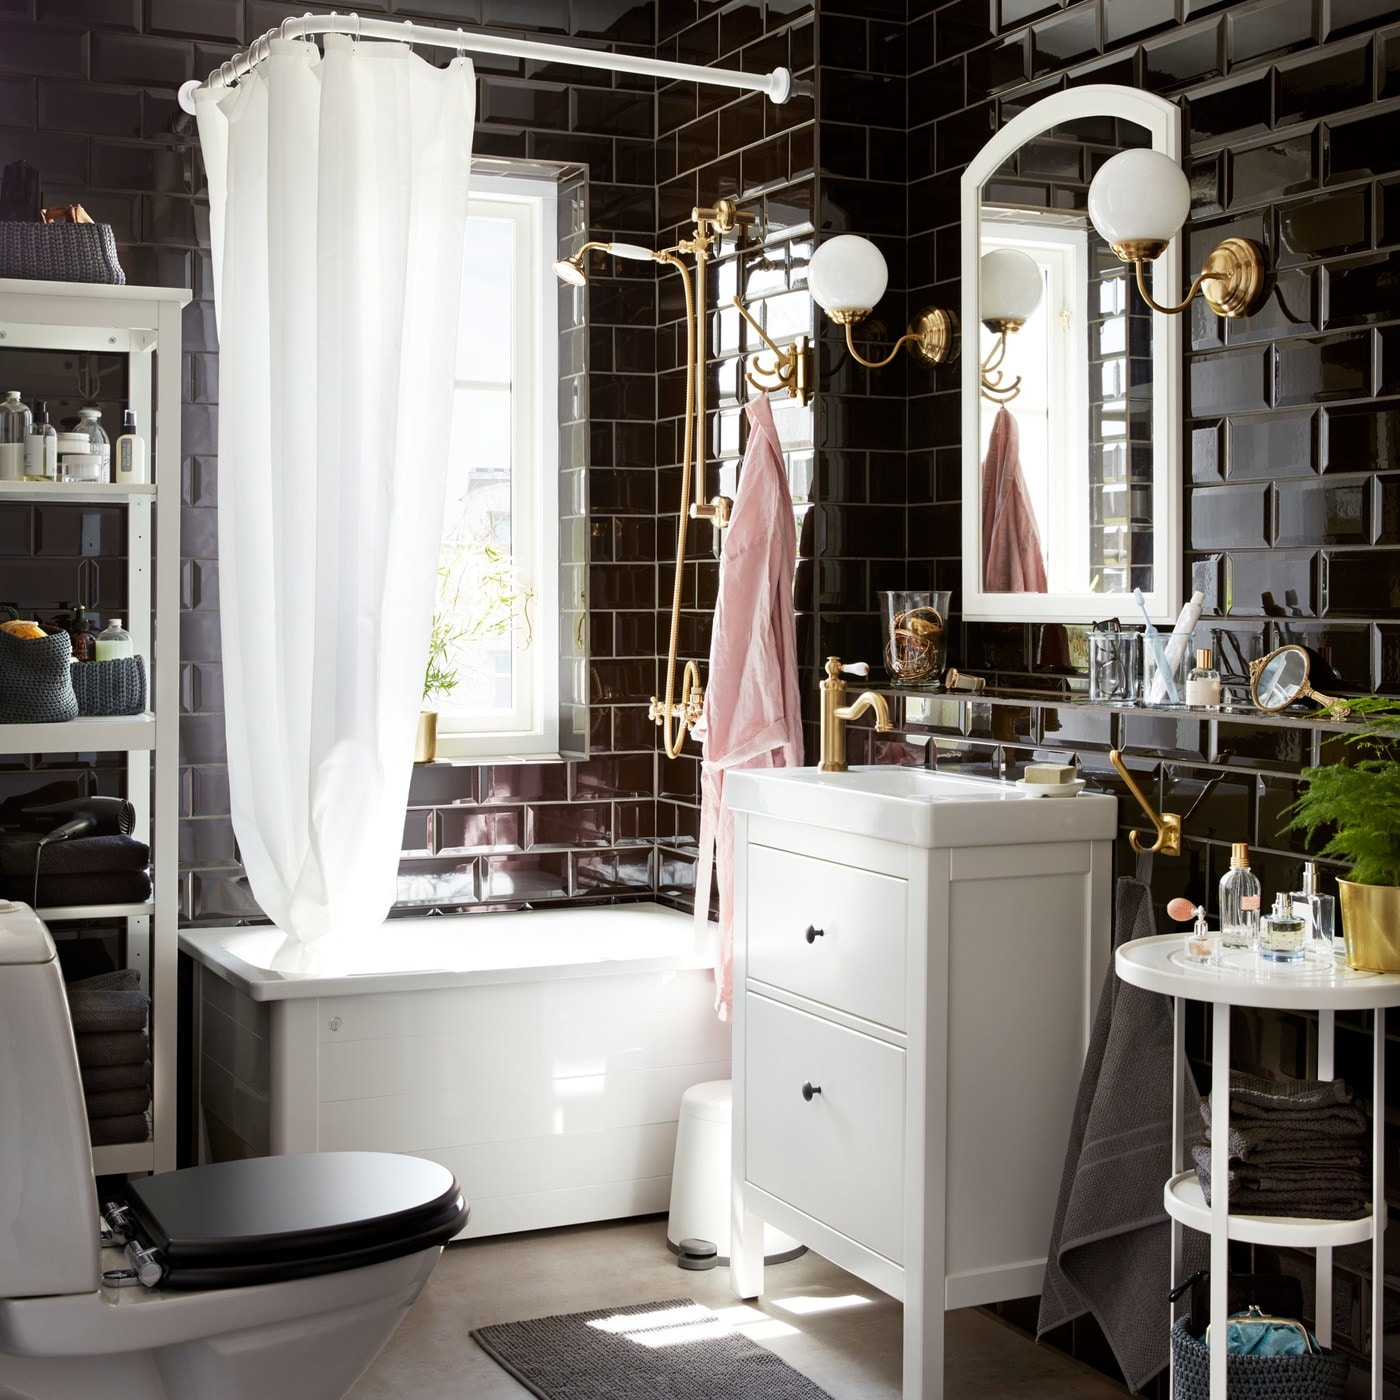 A dramatic and classic bathroom with glossy black tiles, white furniture, and brass-coloured wall lamps by the mirror.